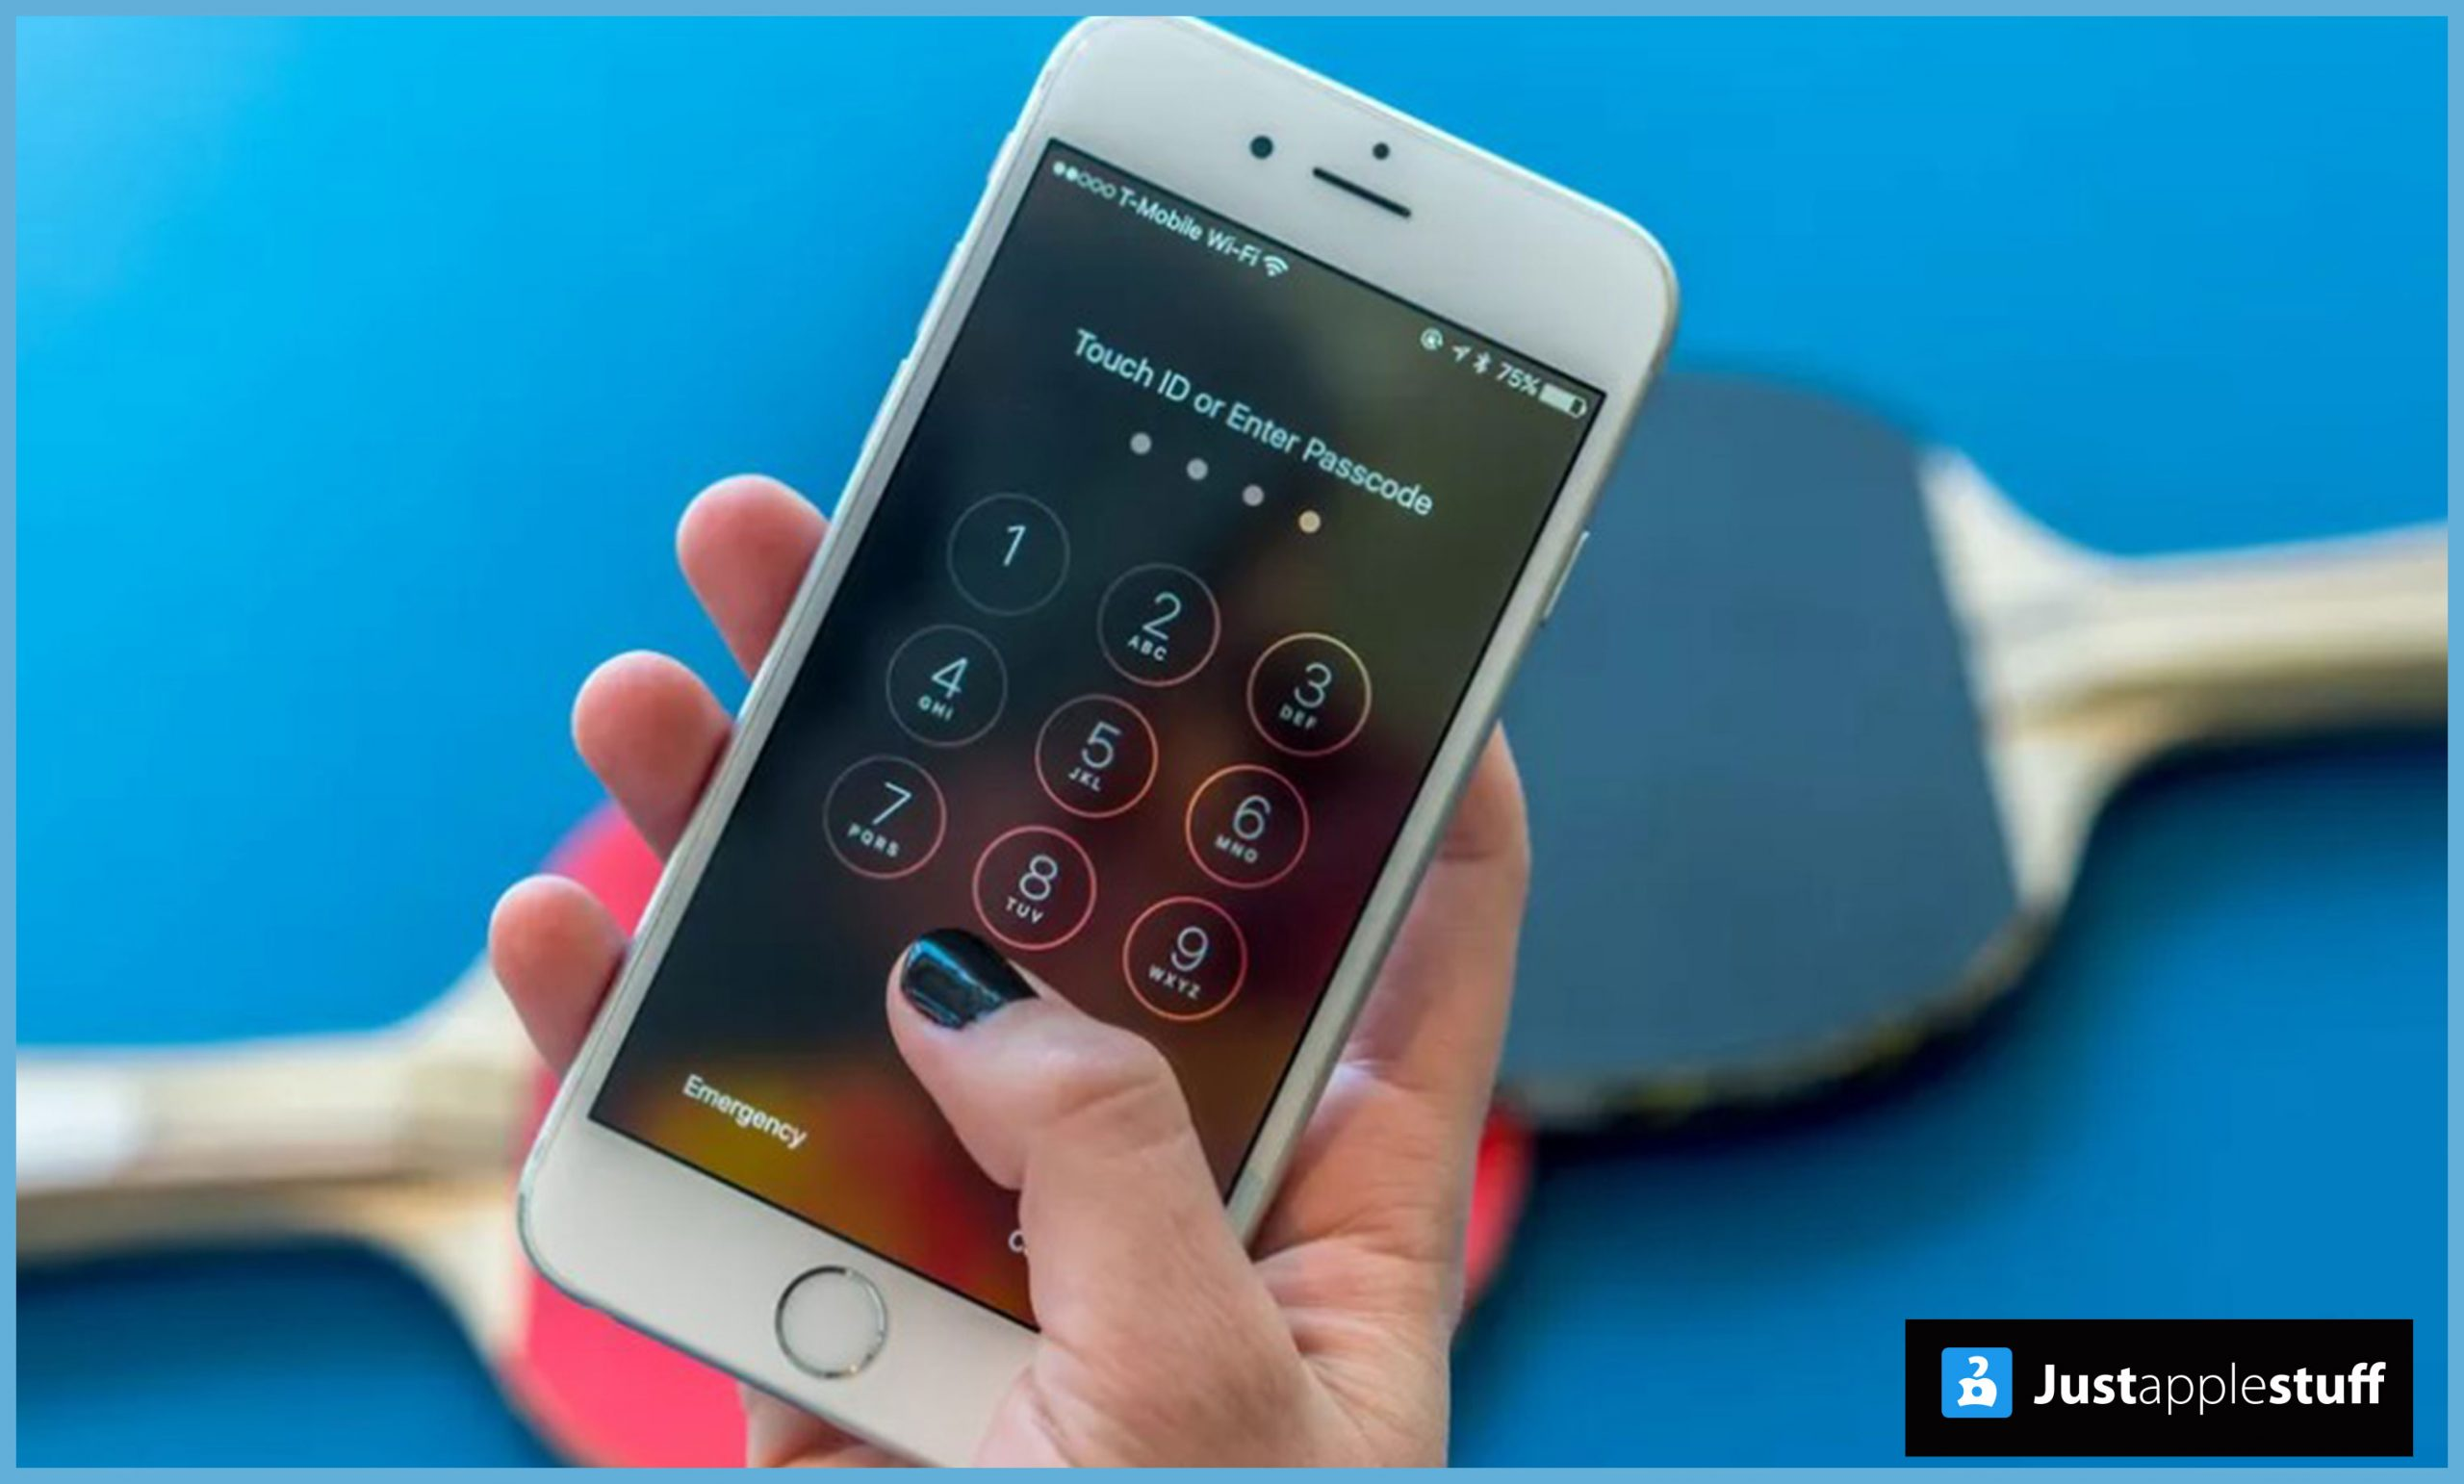 How to change the password on iphone